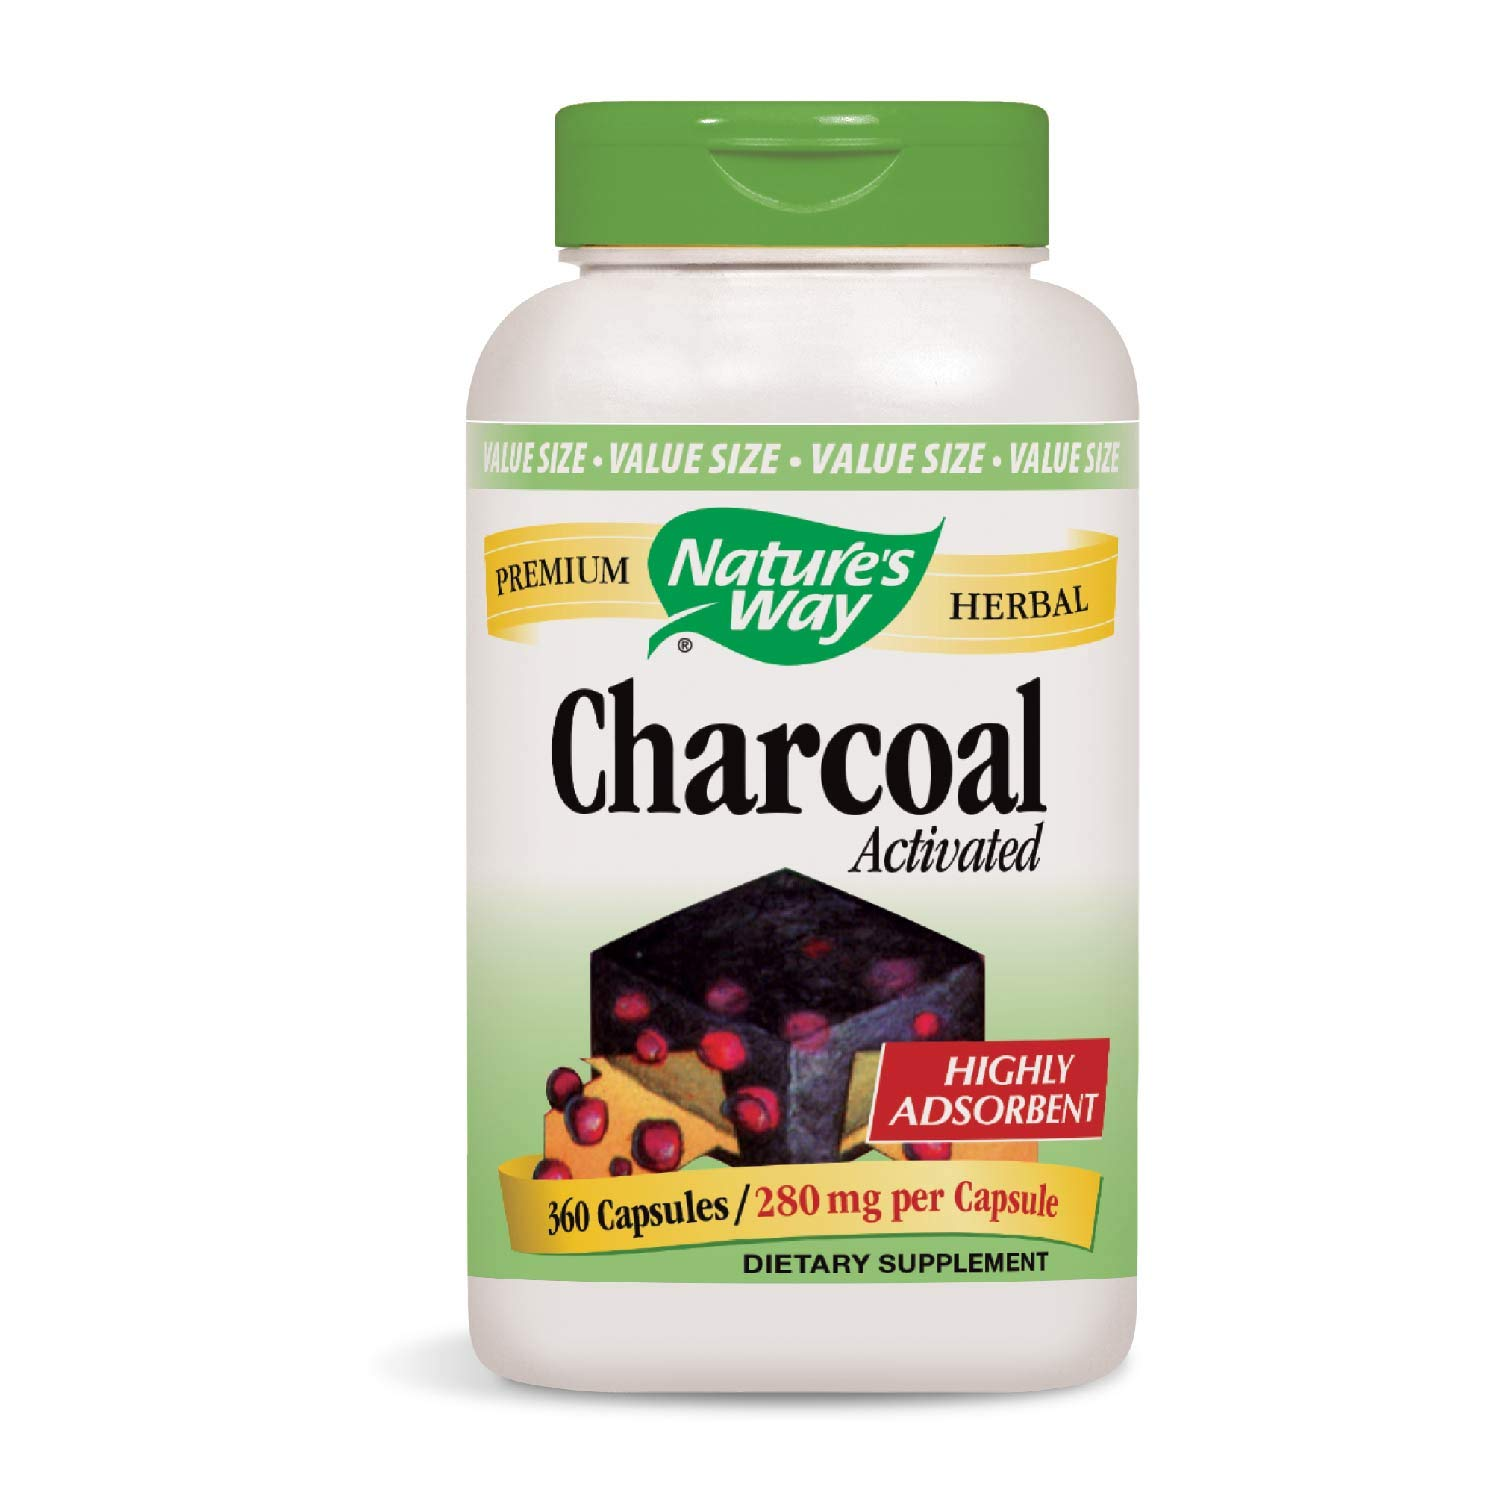 Nature's Way Charcoal Activated; 560 mg Charcoal per serving; 360 Capsules (Packaging May Vary) by Nature's Way (Image #1)